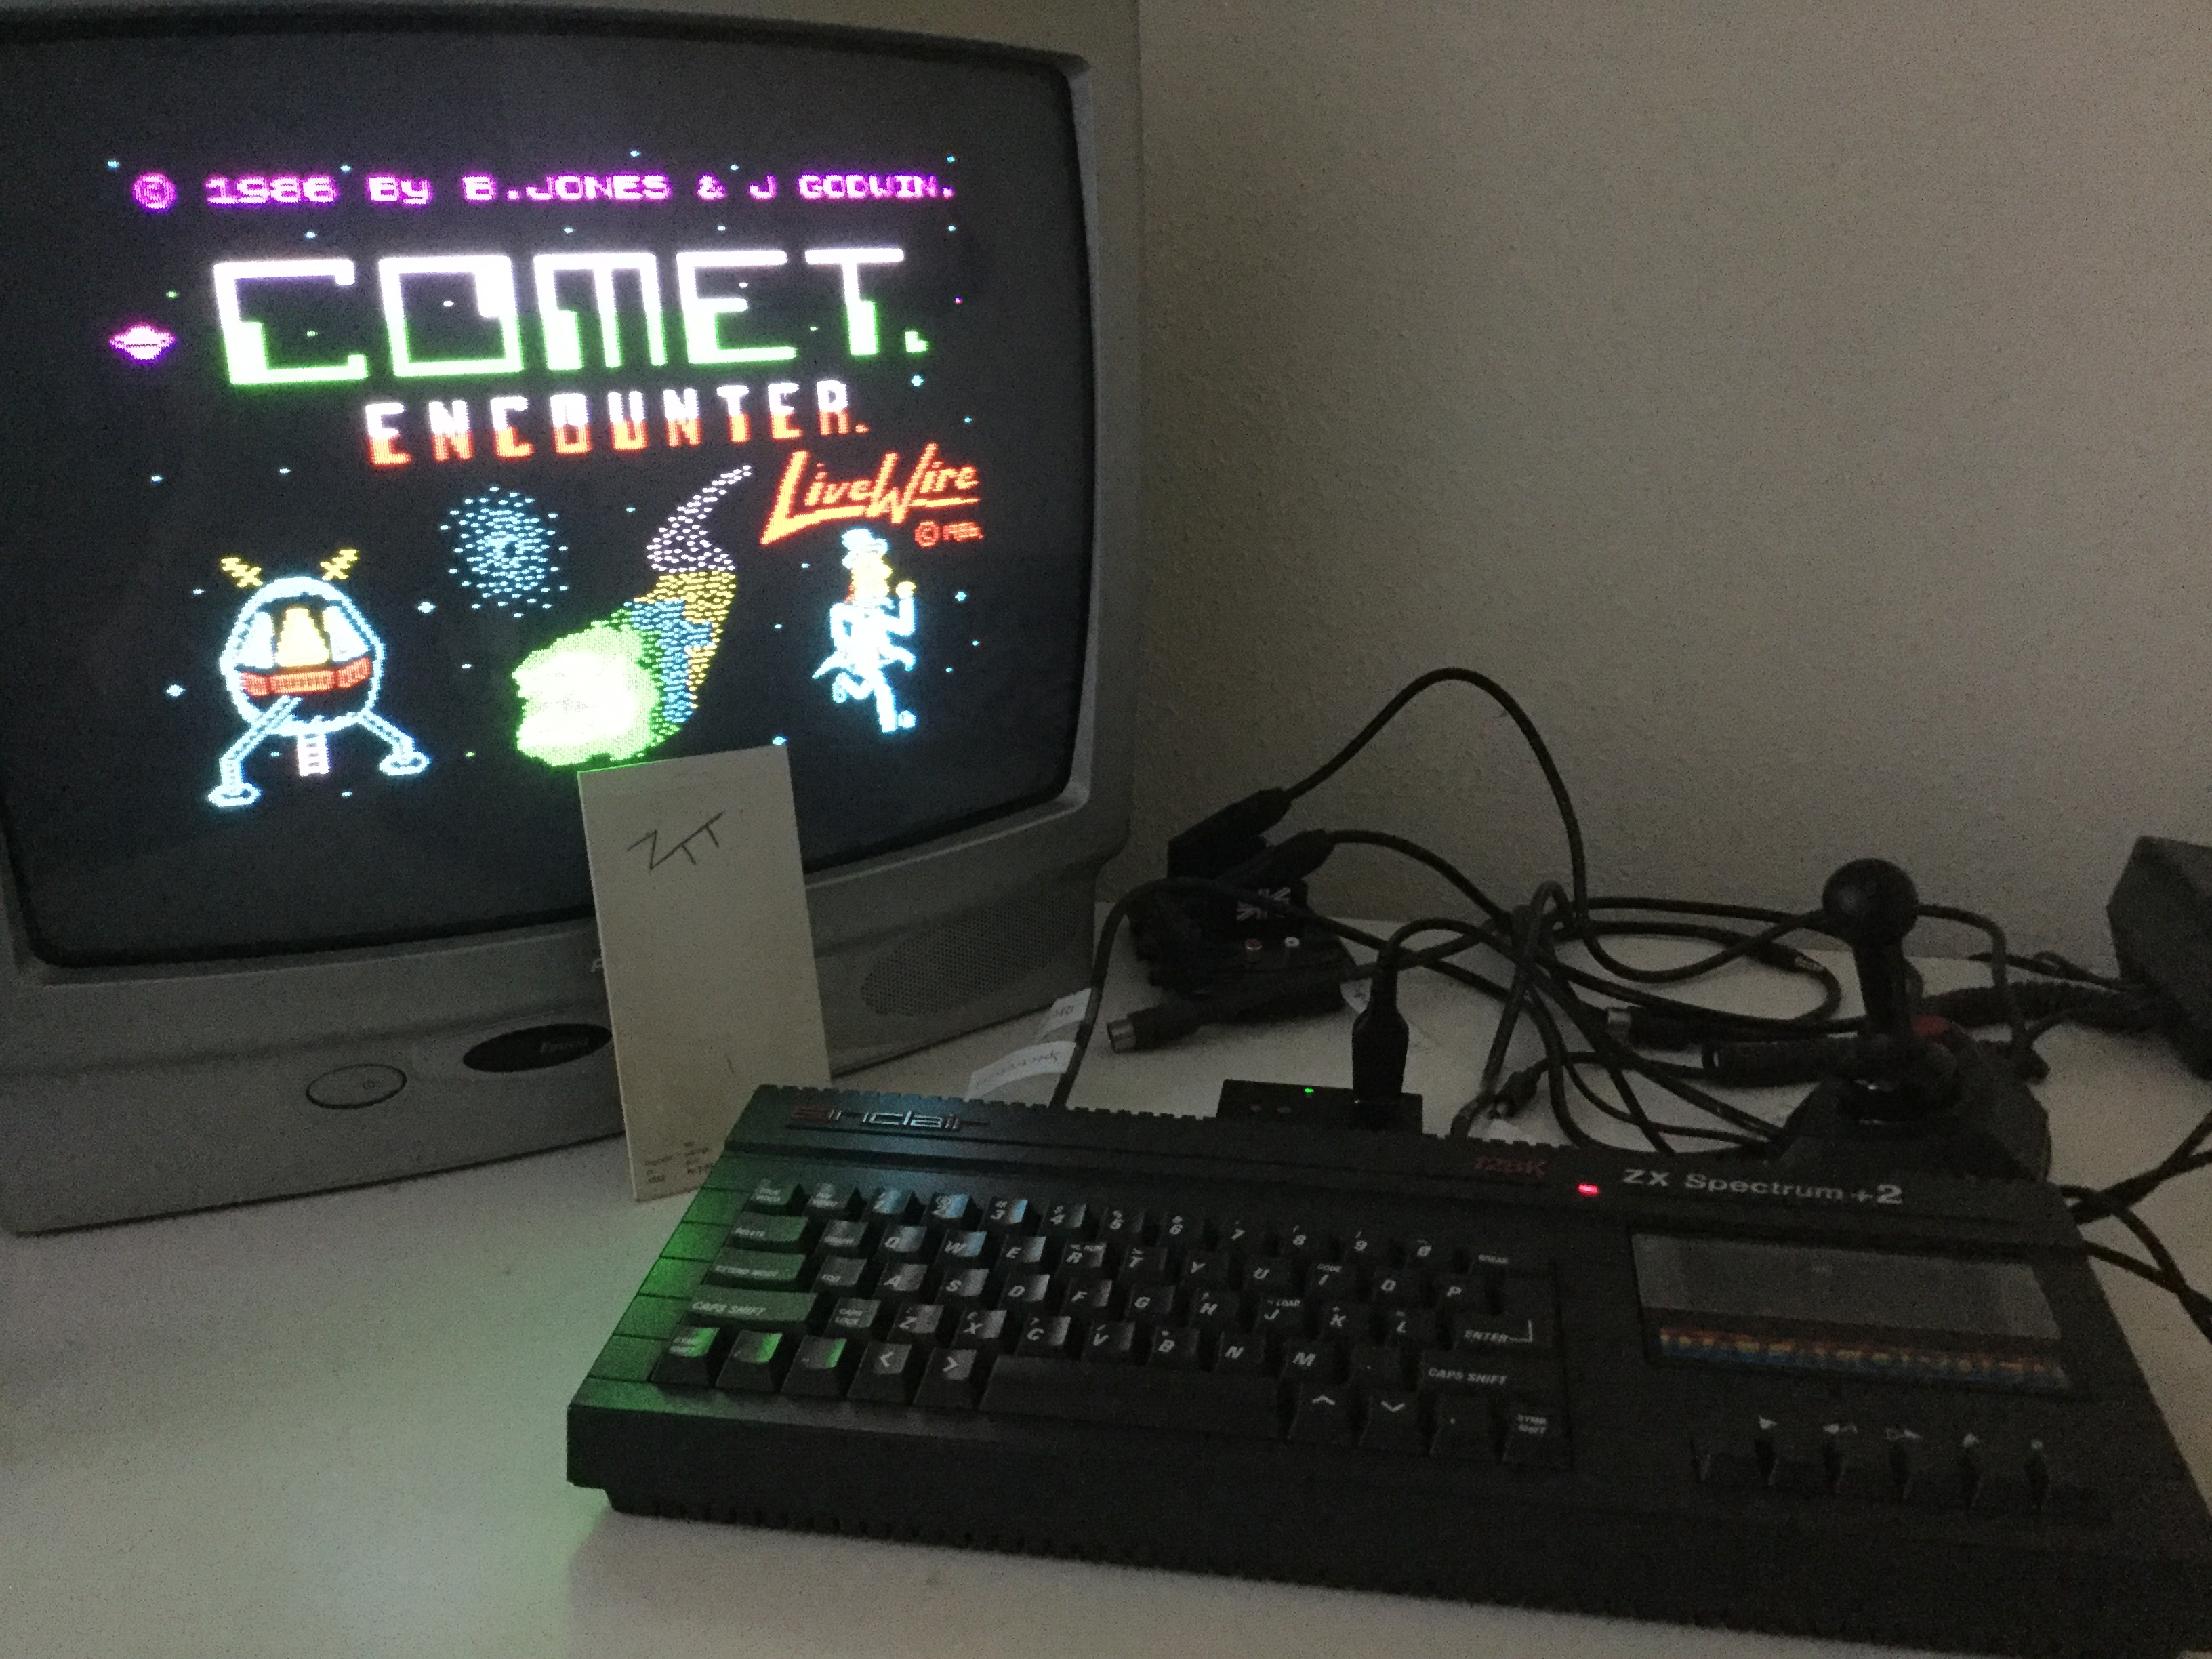 Frankie: Comet Encounter [Skill Level 1] (ZX Spectrum) 95 points on 2019-05-05 12:27:47